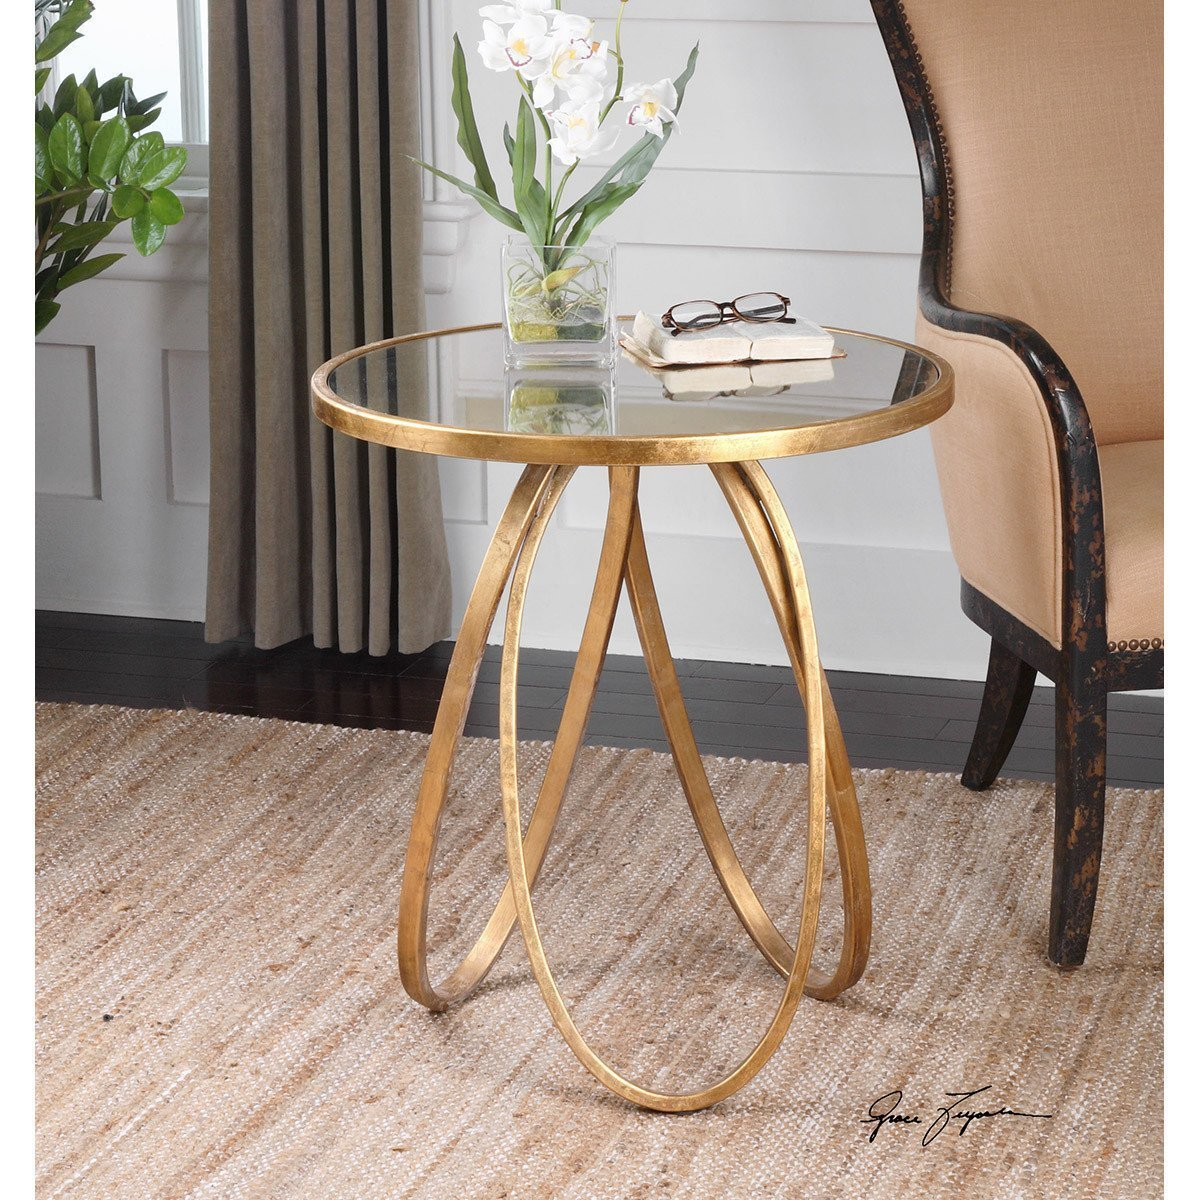 alltique boutique search engine uttermost dice red accent table montrez gold pottery barn lamps patio set clearance tablecloth for rectangle tree stump end small glass better